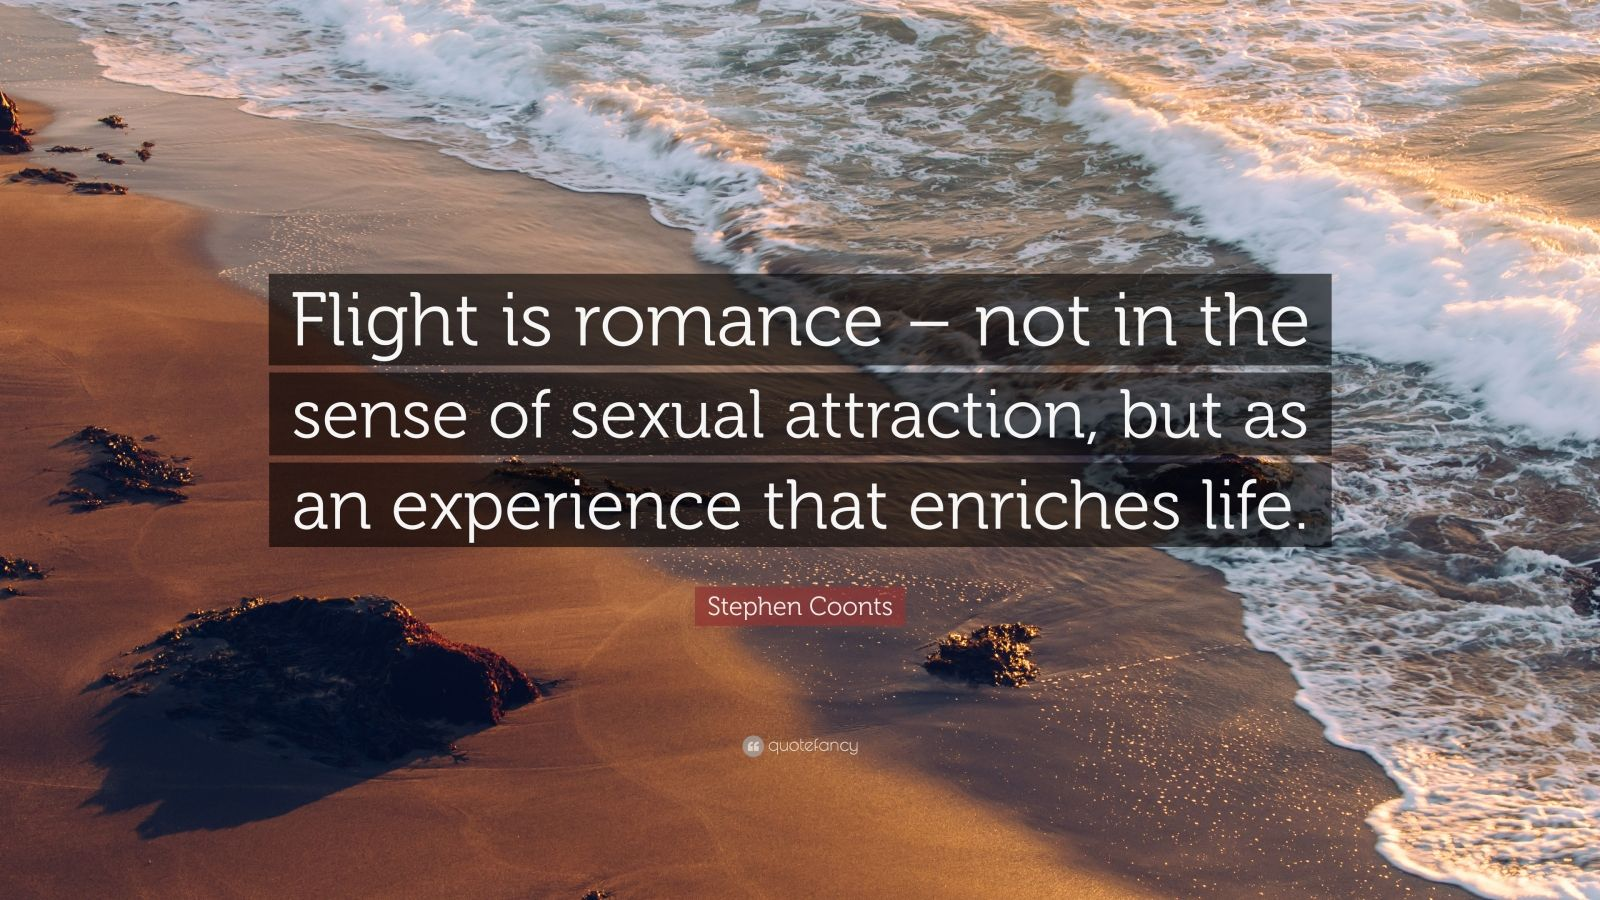 Stephen Coonts Quote: Flight is romance - not in the